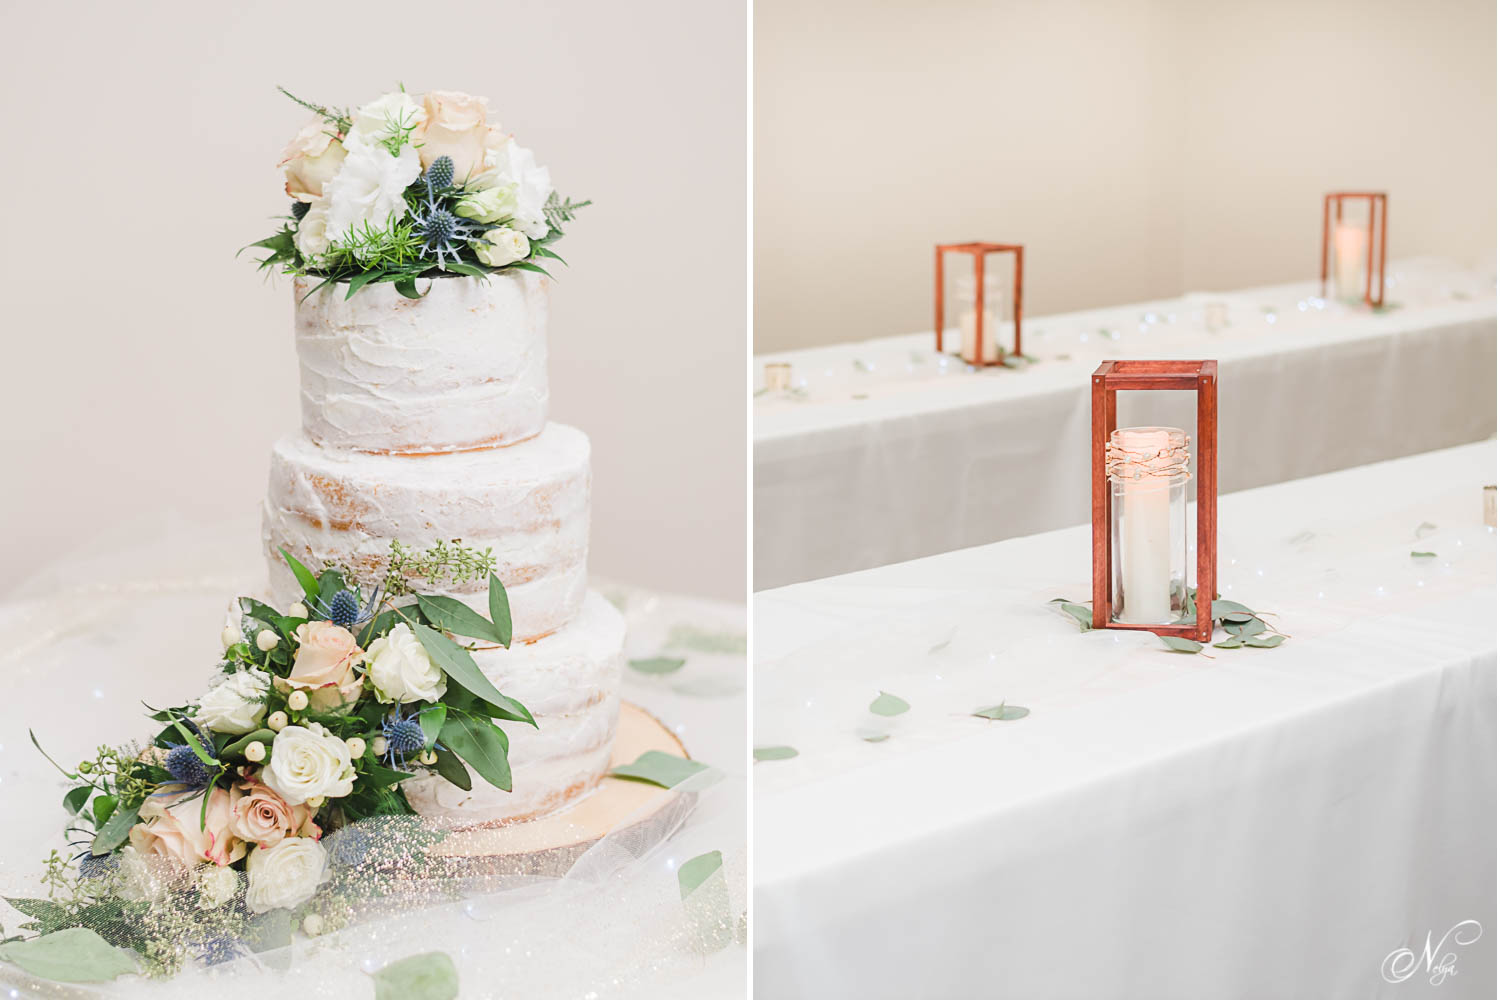 white wedding cake with white roses and dusty blue berries on top. And wodden frame center pieces at wedding reception